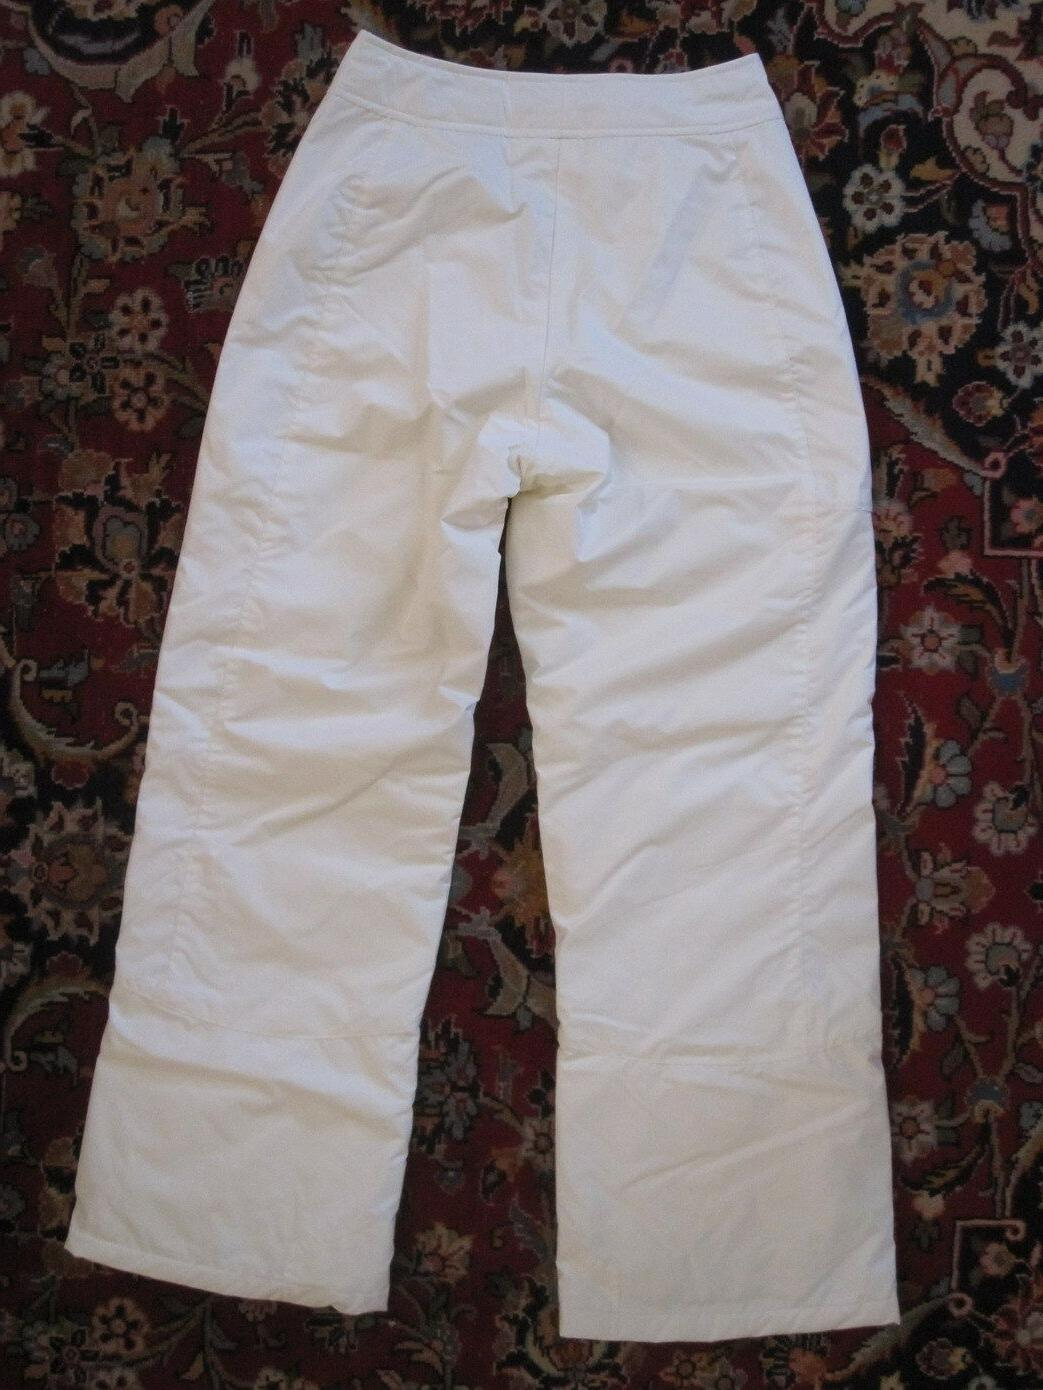 NILS SNOW SKI PANTS W/TAGS!